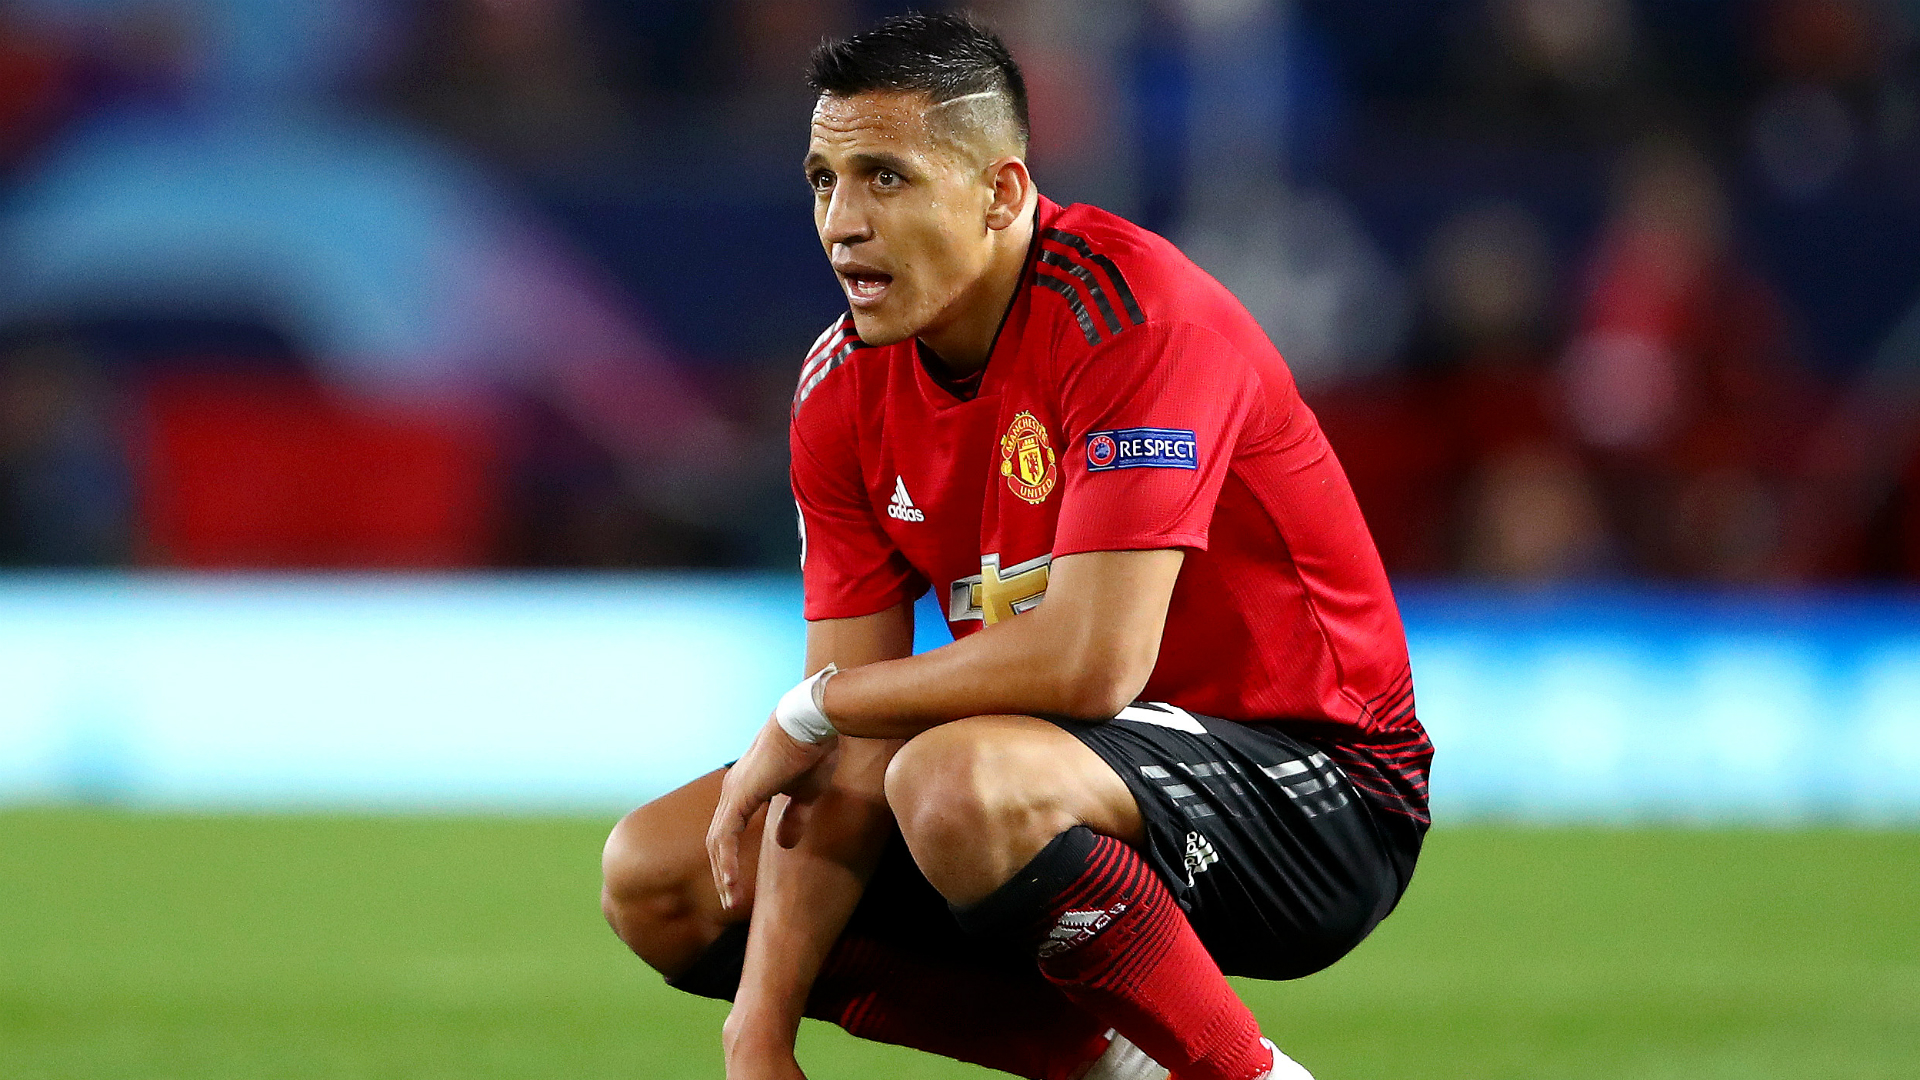 Sanchez talks ongoing but Solskjaer won't rule out Manchester United stay